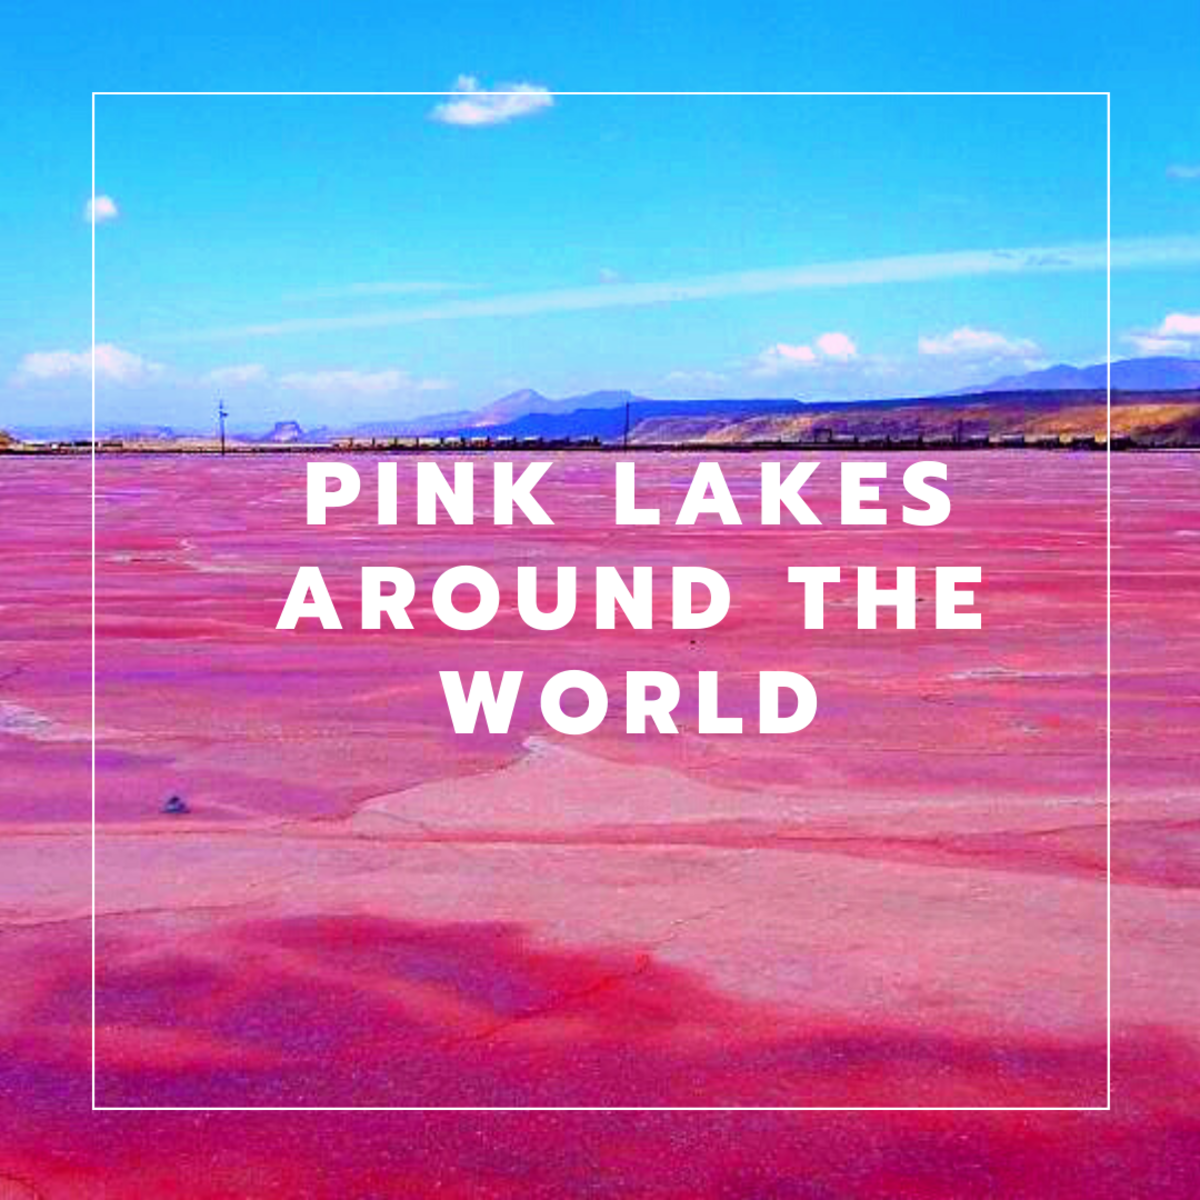 Pink lakes are the result of algae, halophilic bacteria, and archaea in extremely salty water.